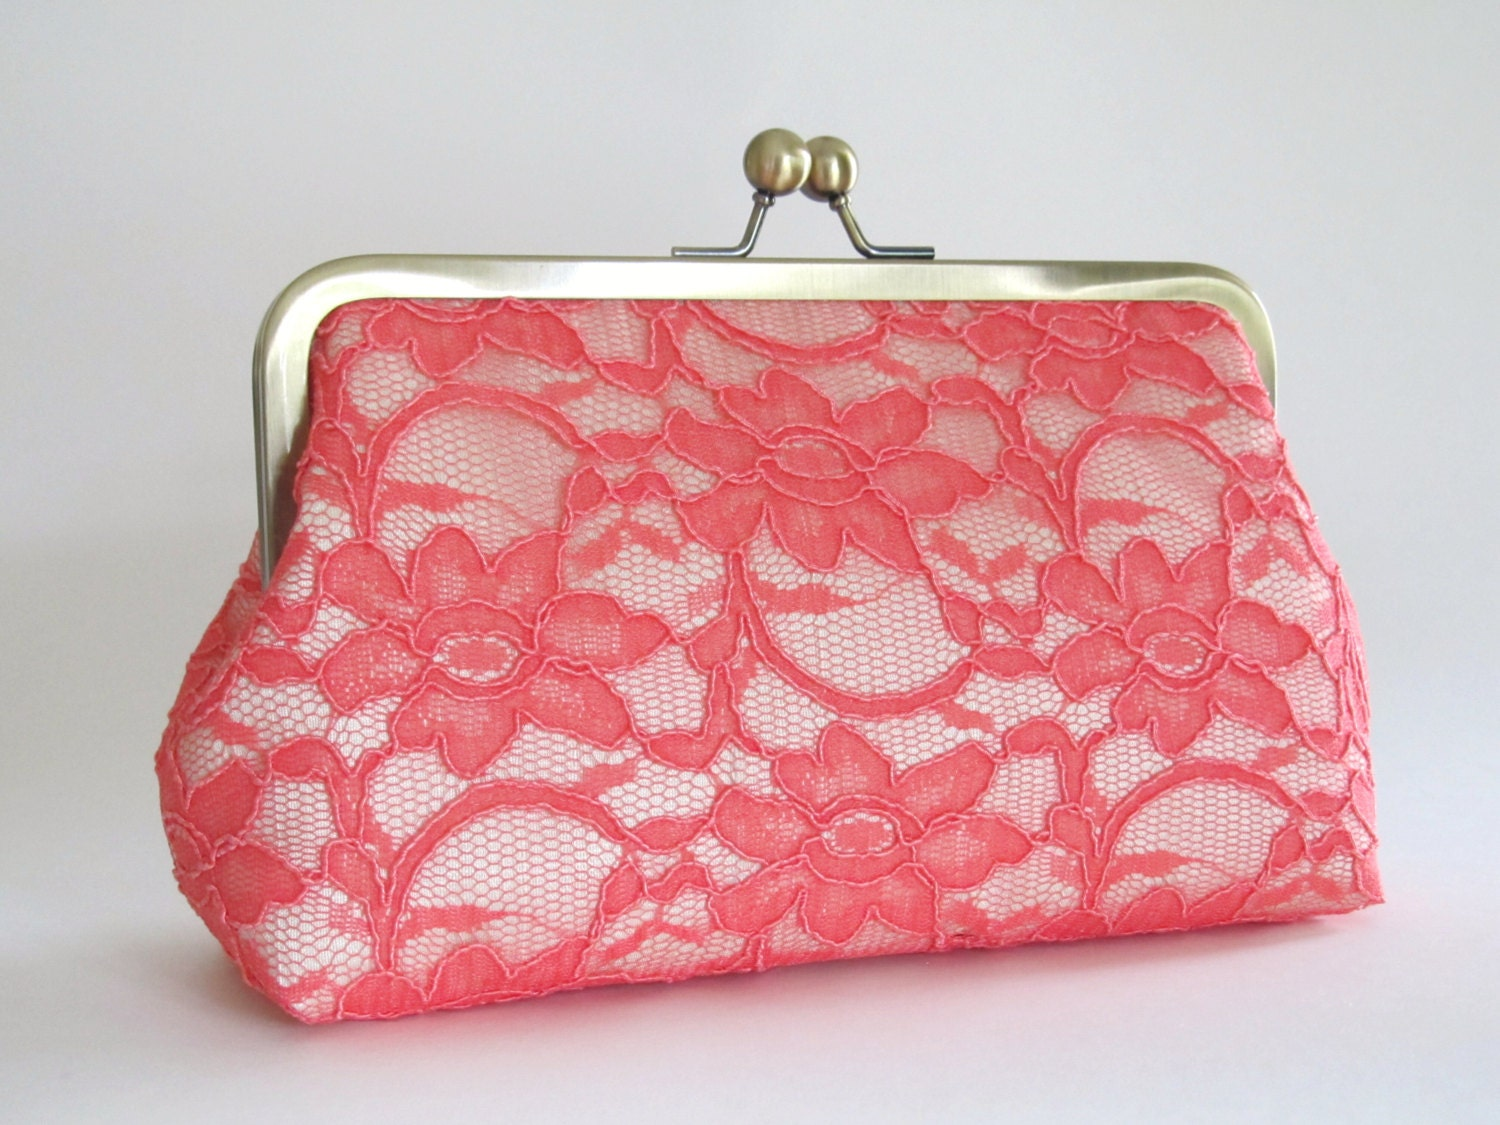 Bridal Silk And Lace Clutch, Coral/Cream Clutch,Bridal Accessories, Bridal Clutch, Bridesmaid Clutches